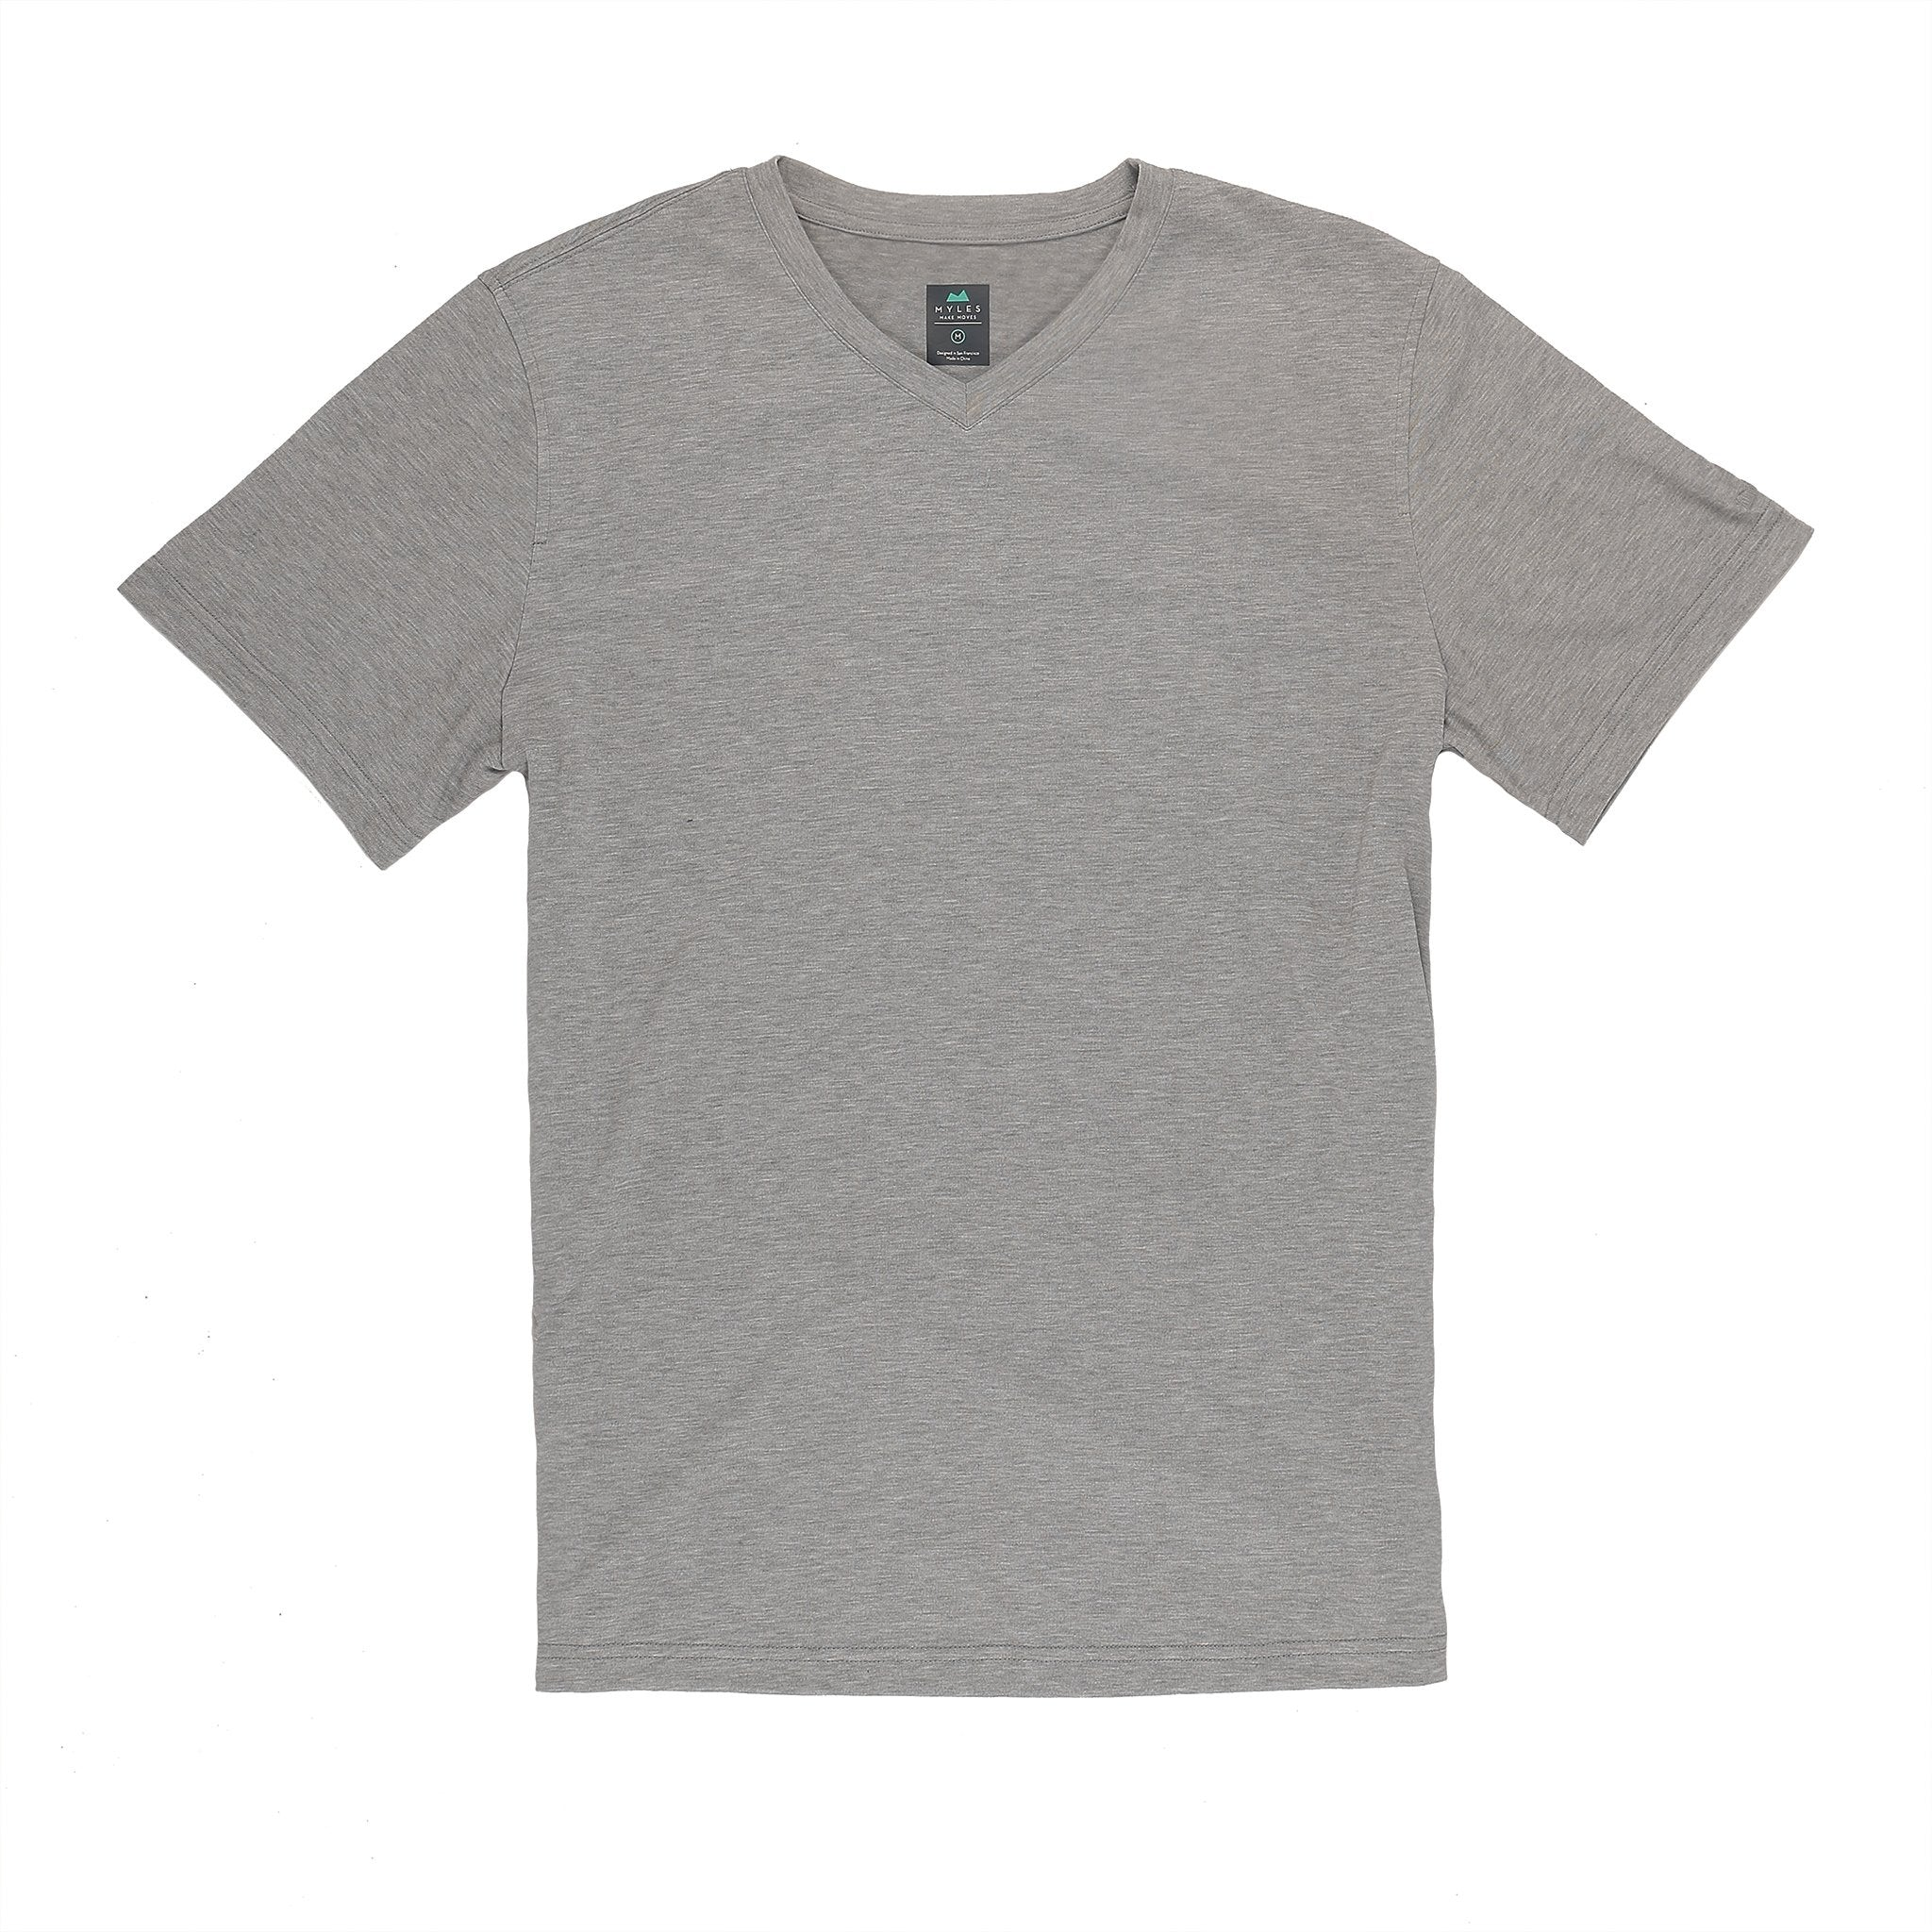 Everyday Tee with V-Neck in Heather Gray